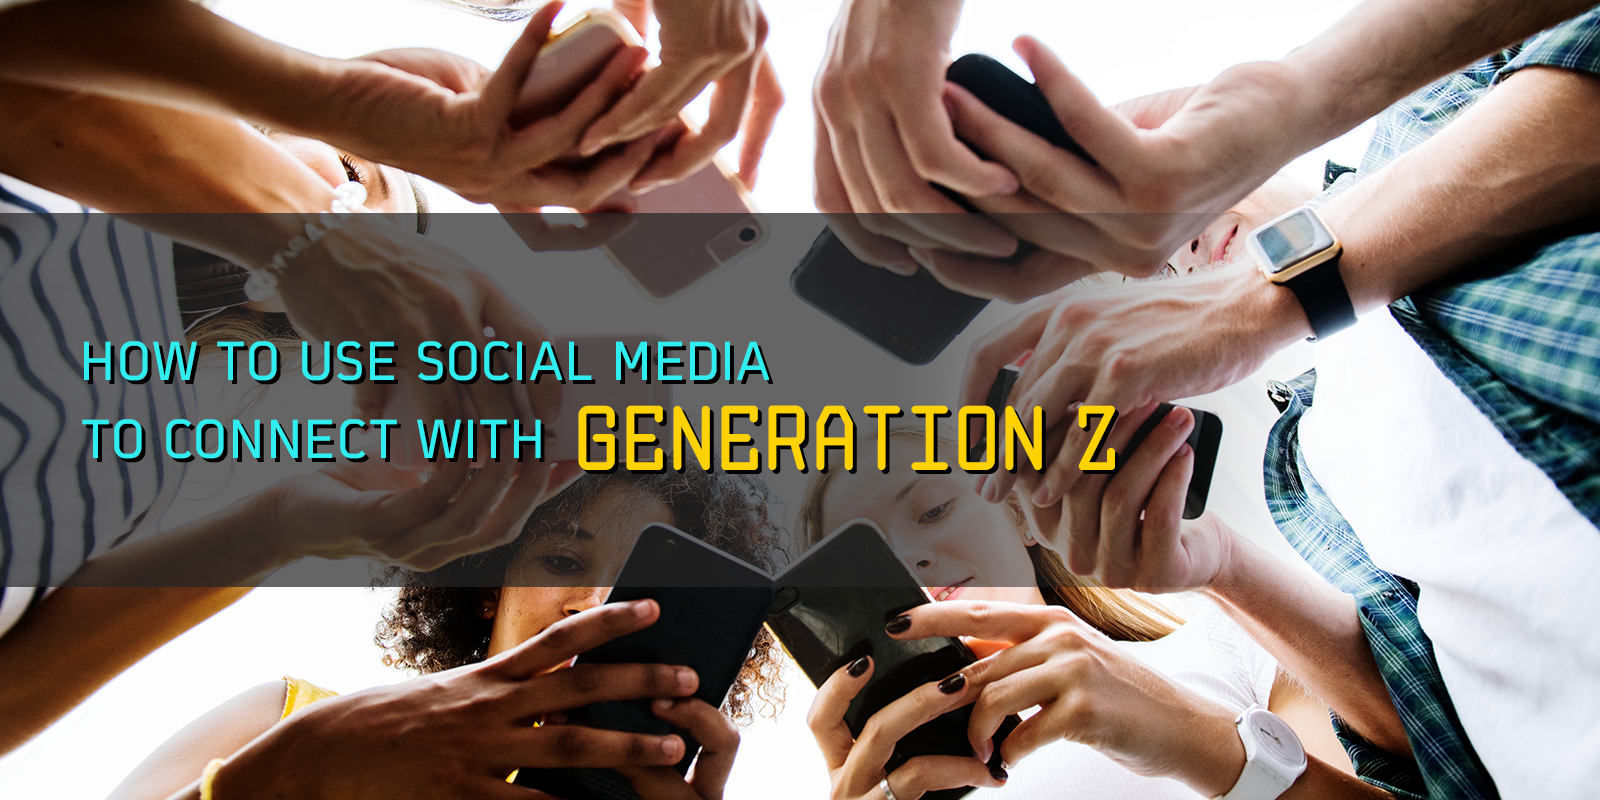 How To Use Social Media To Connect With Gen Z